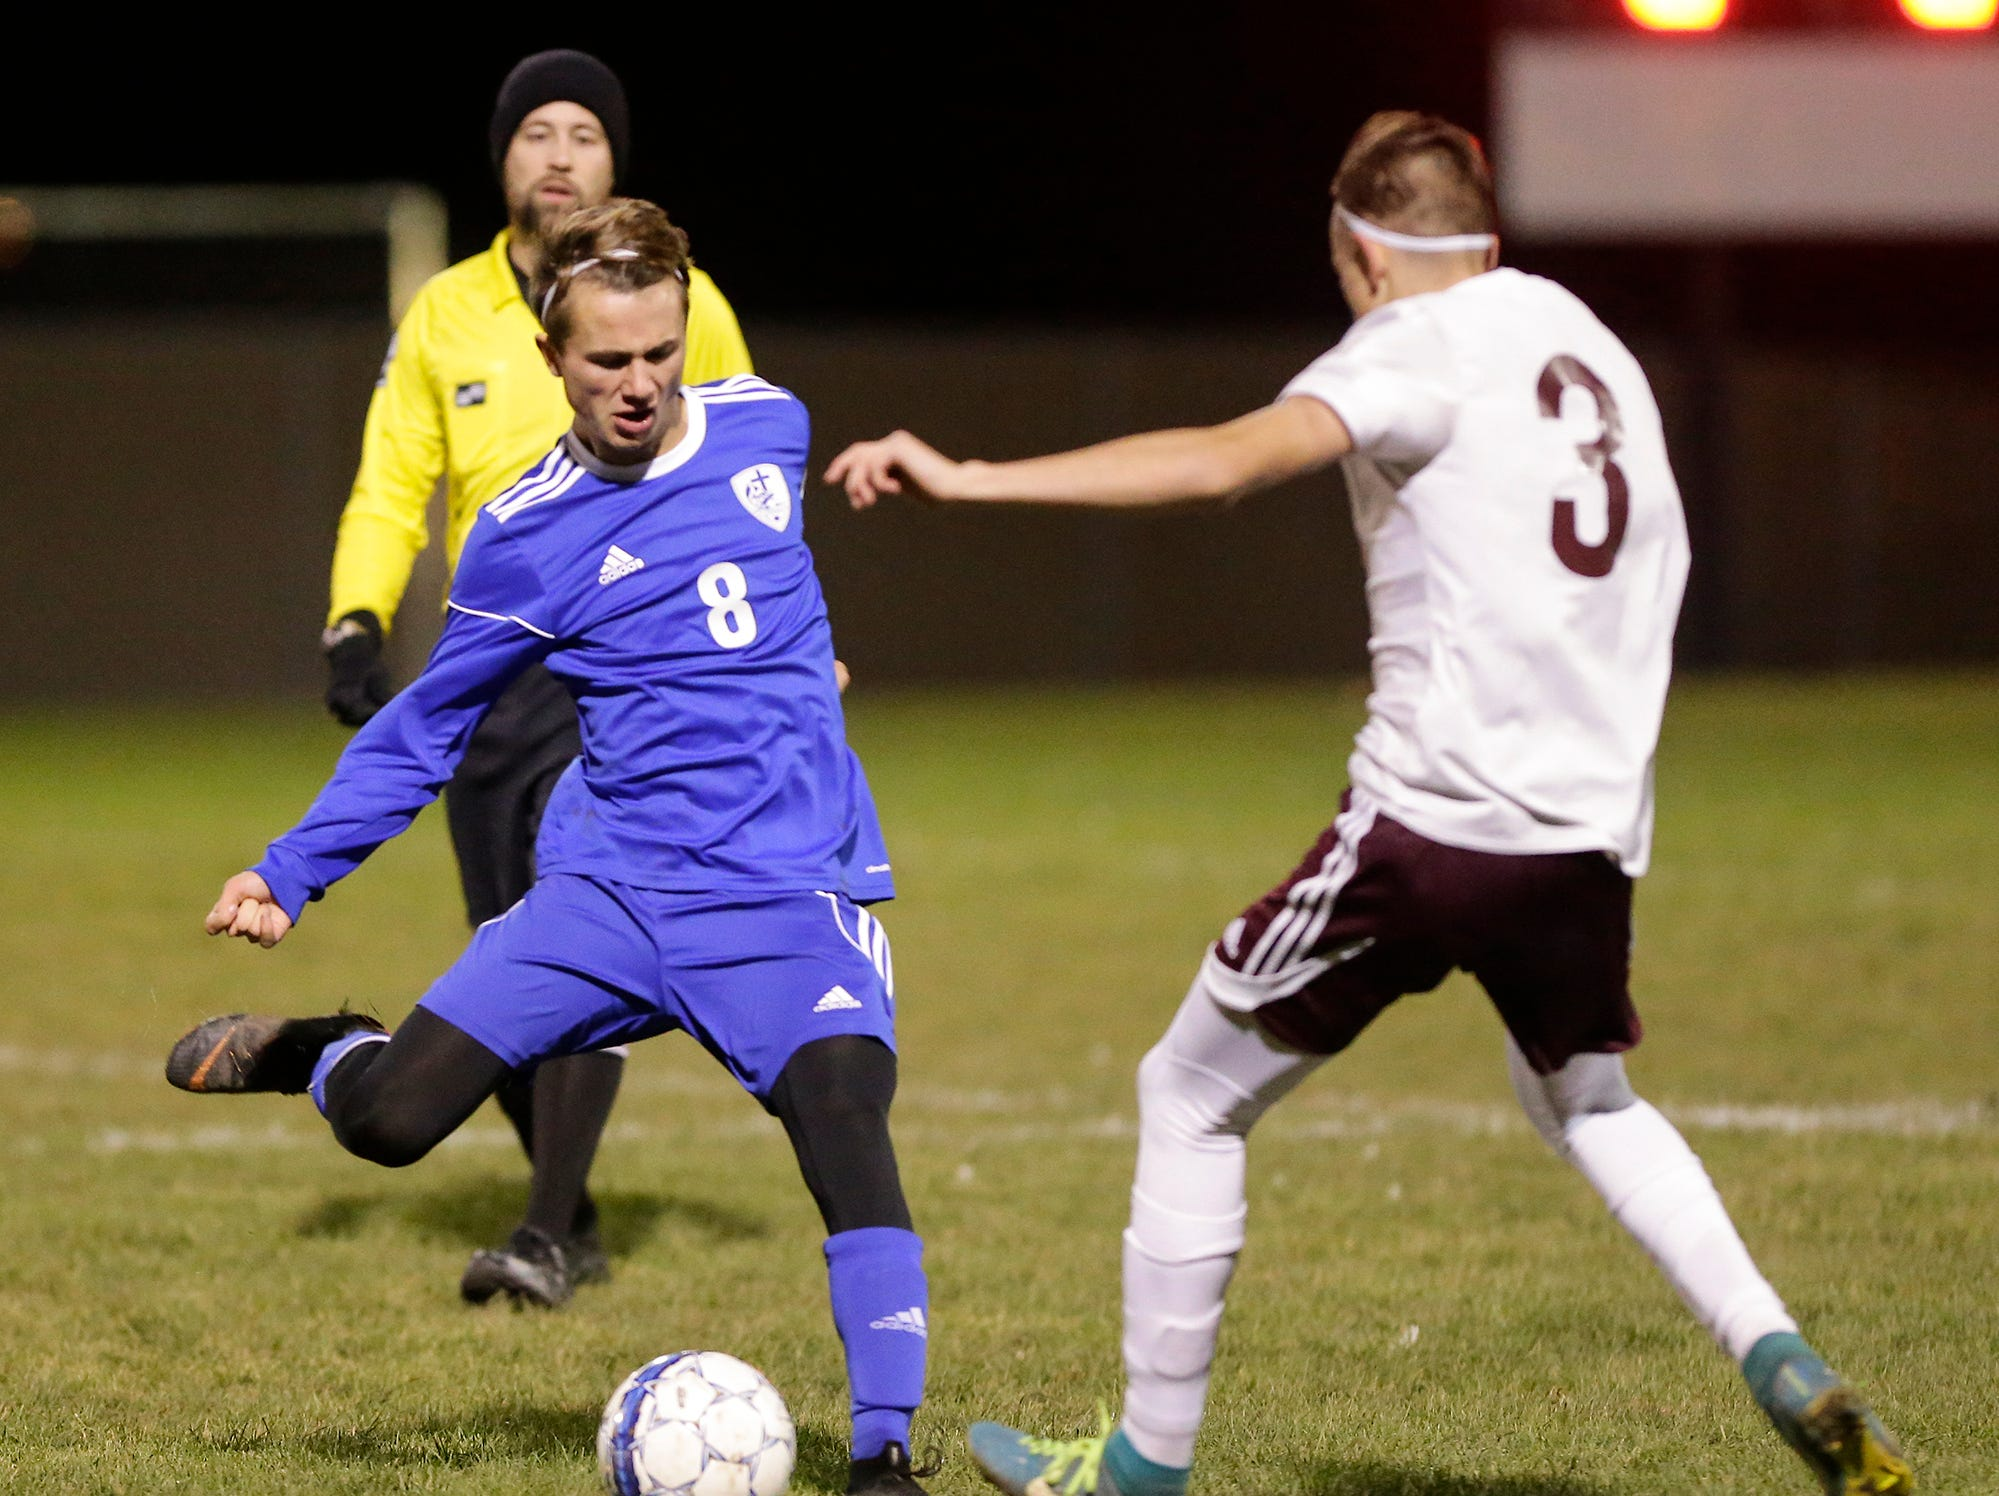 Winnebago Lutheran Academy soccer's Jack Rabe kicks the ball against Omro High School's Erin Clifford during their WIAA regional playoff game Thursday, October 18, 2018 in Fond du Lac, Wisconsin. Doug Raflik/USA TODAY NETWORK-Wisconsin